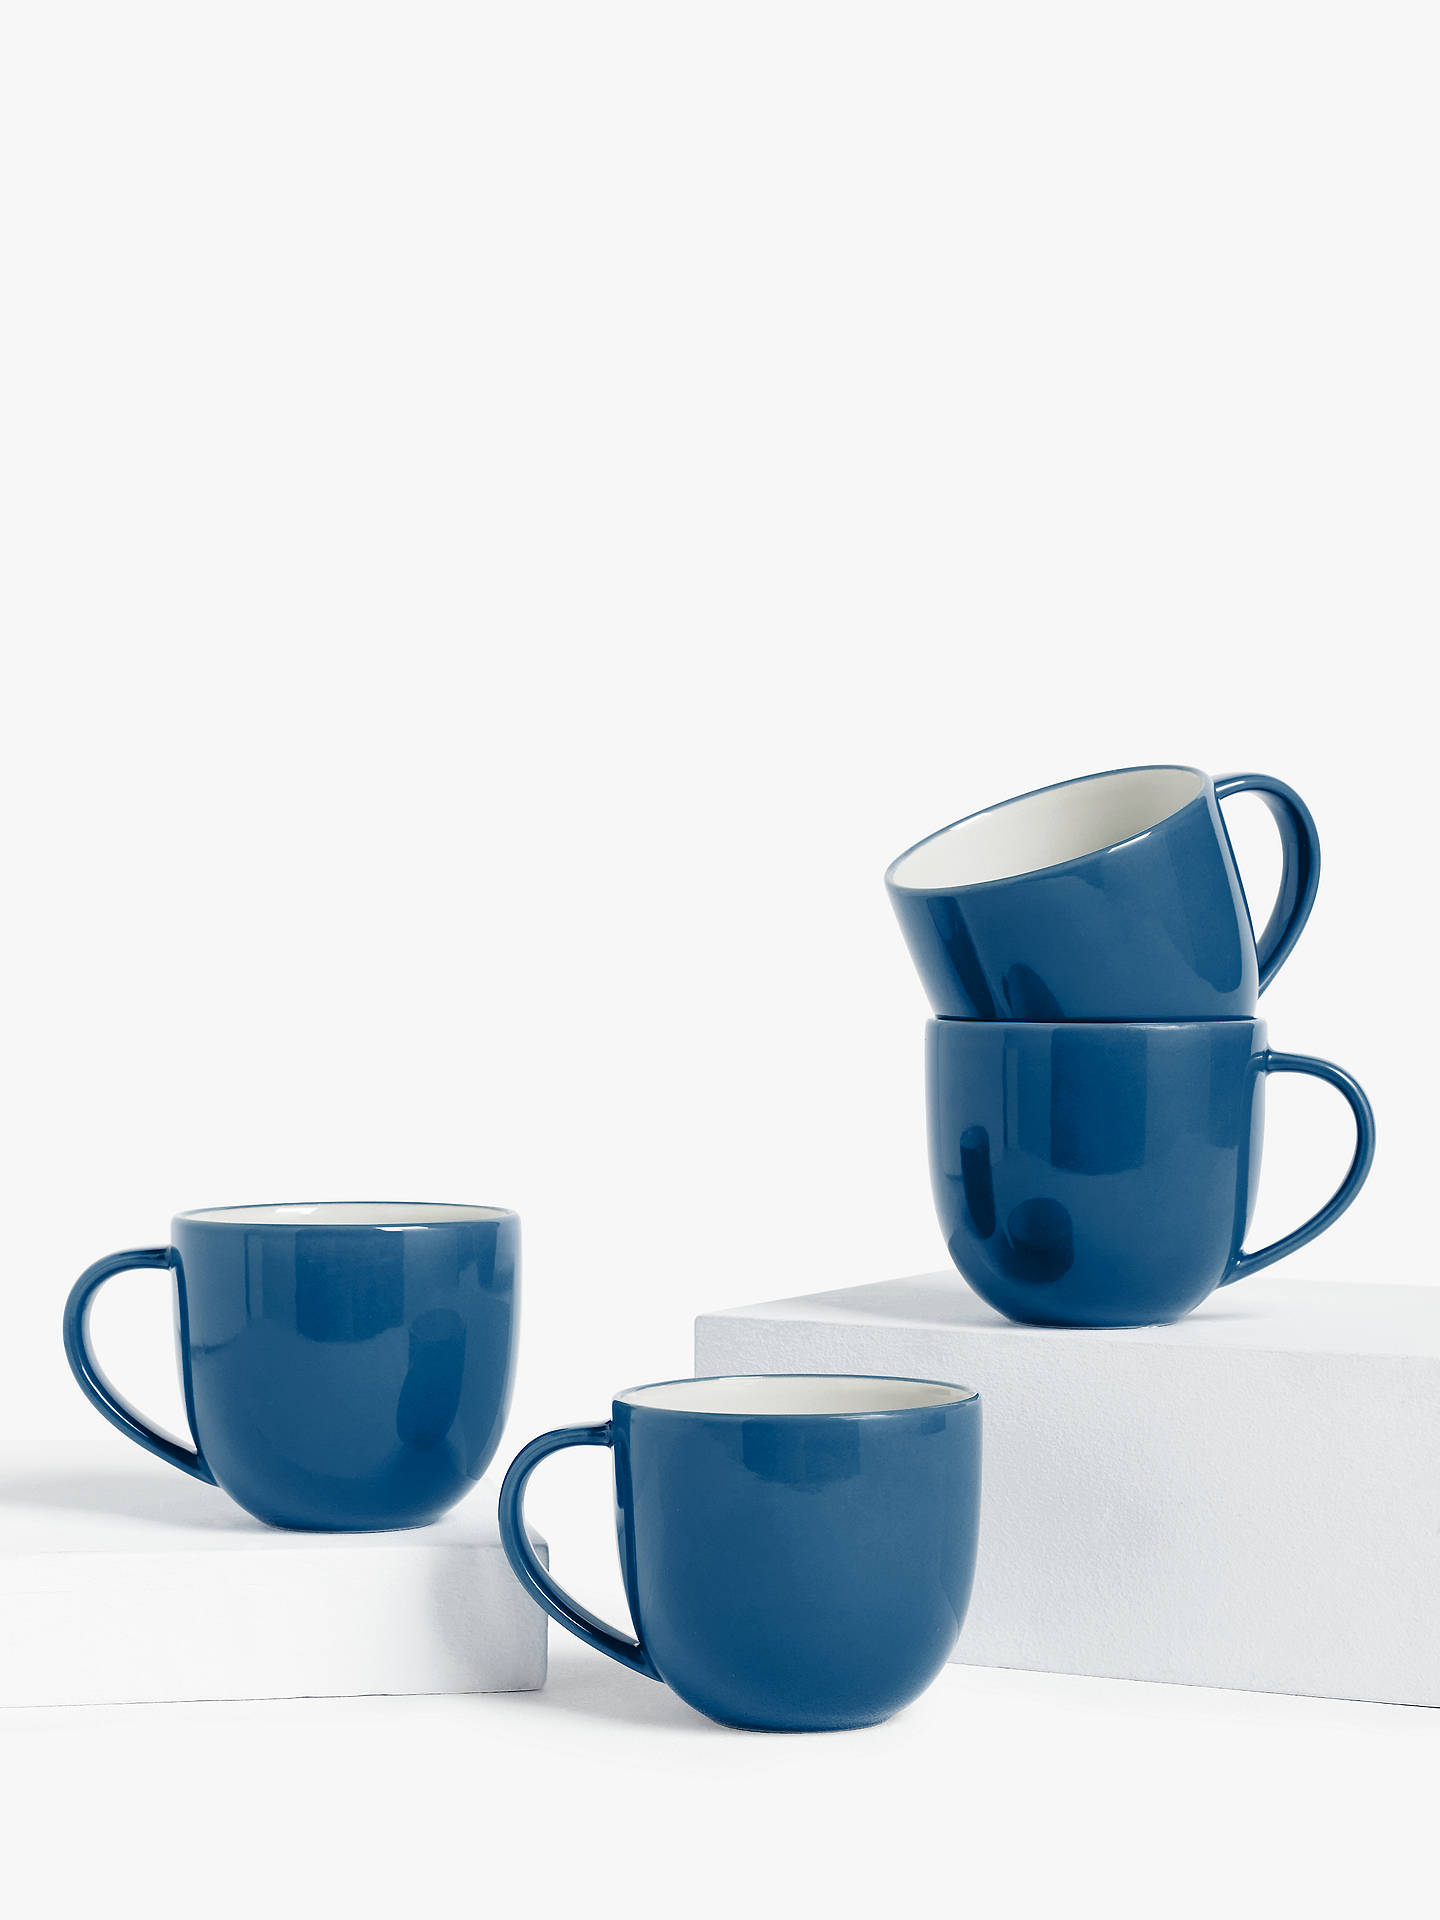 Buy House by John Lewis Stoneware Mugs, Set of 4, 340ml, Blue Online at johnlewis.com